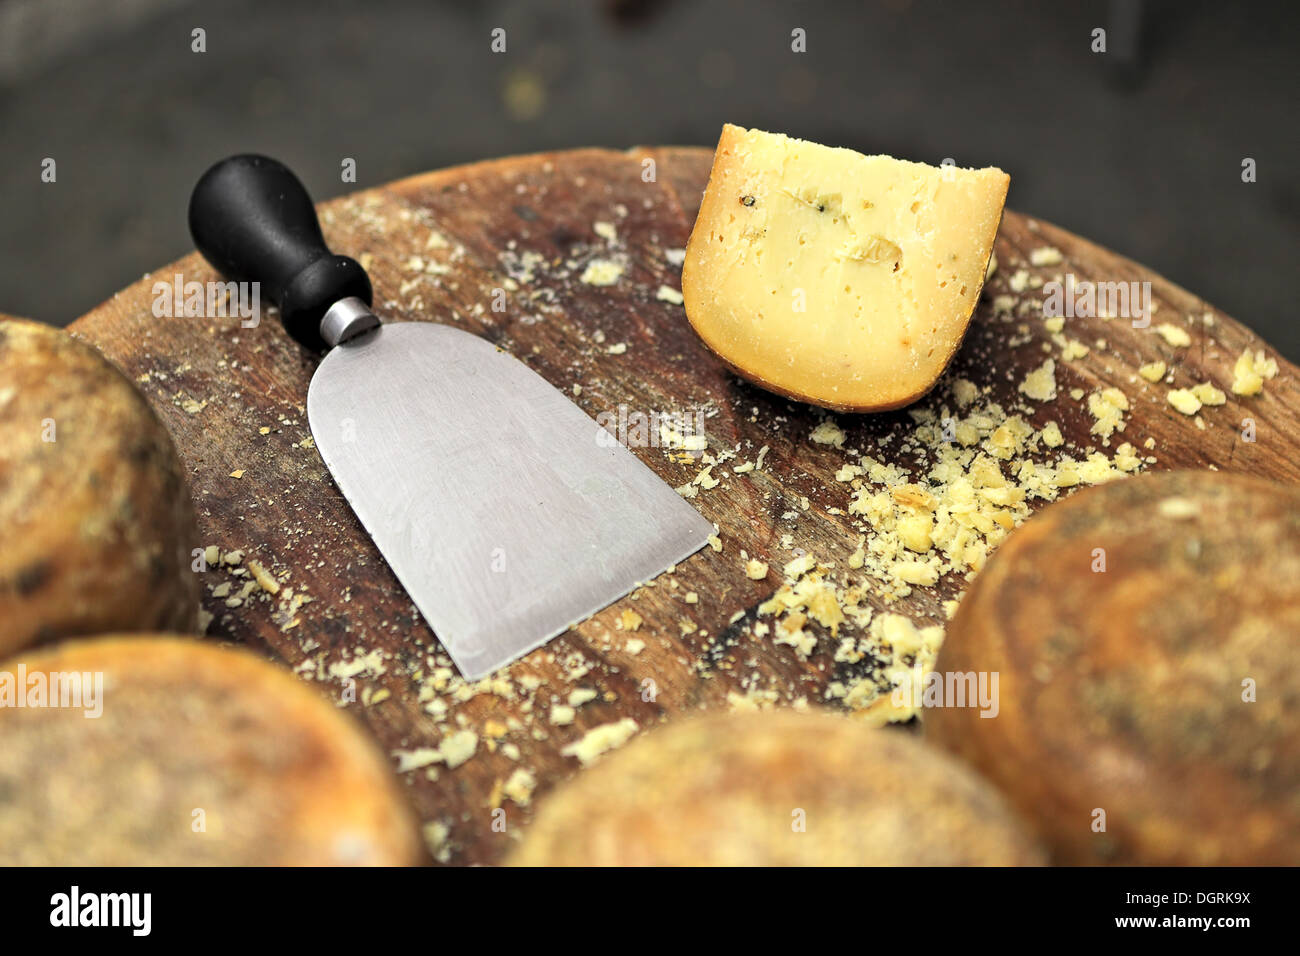 Special knife and famous italian cheese pecorino on small wooden table. - Stock Image